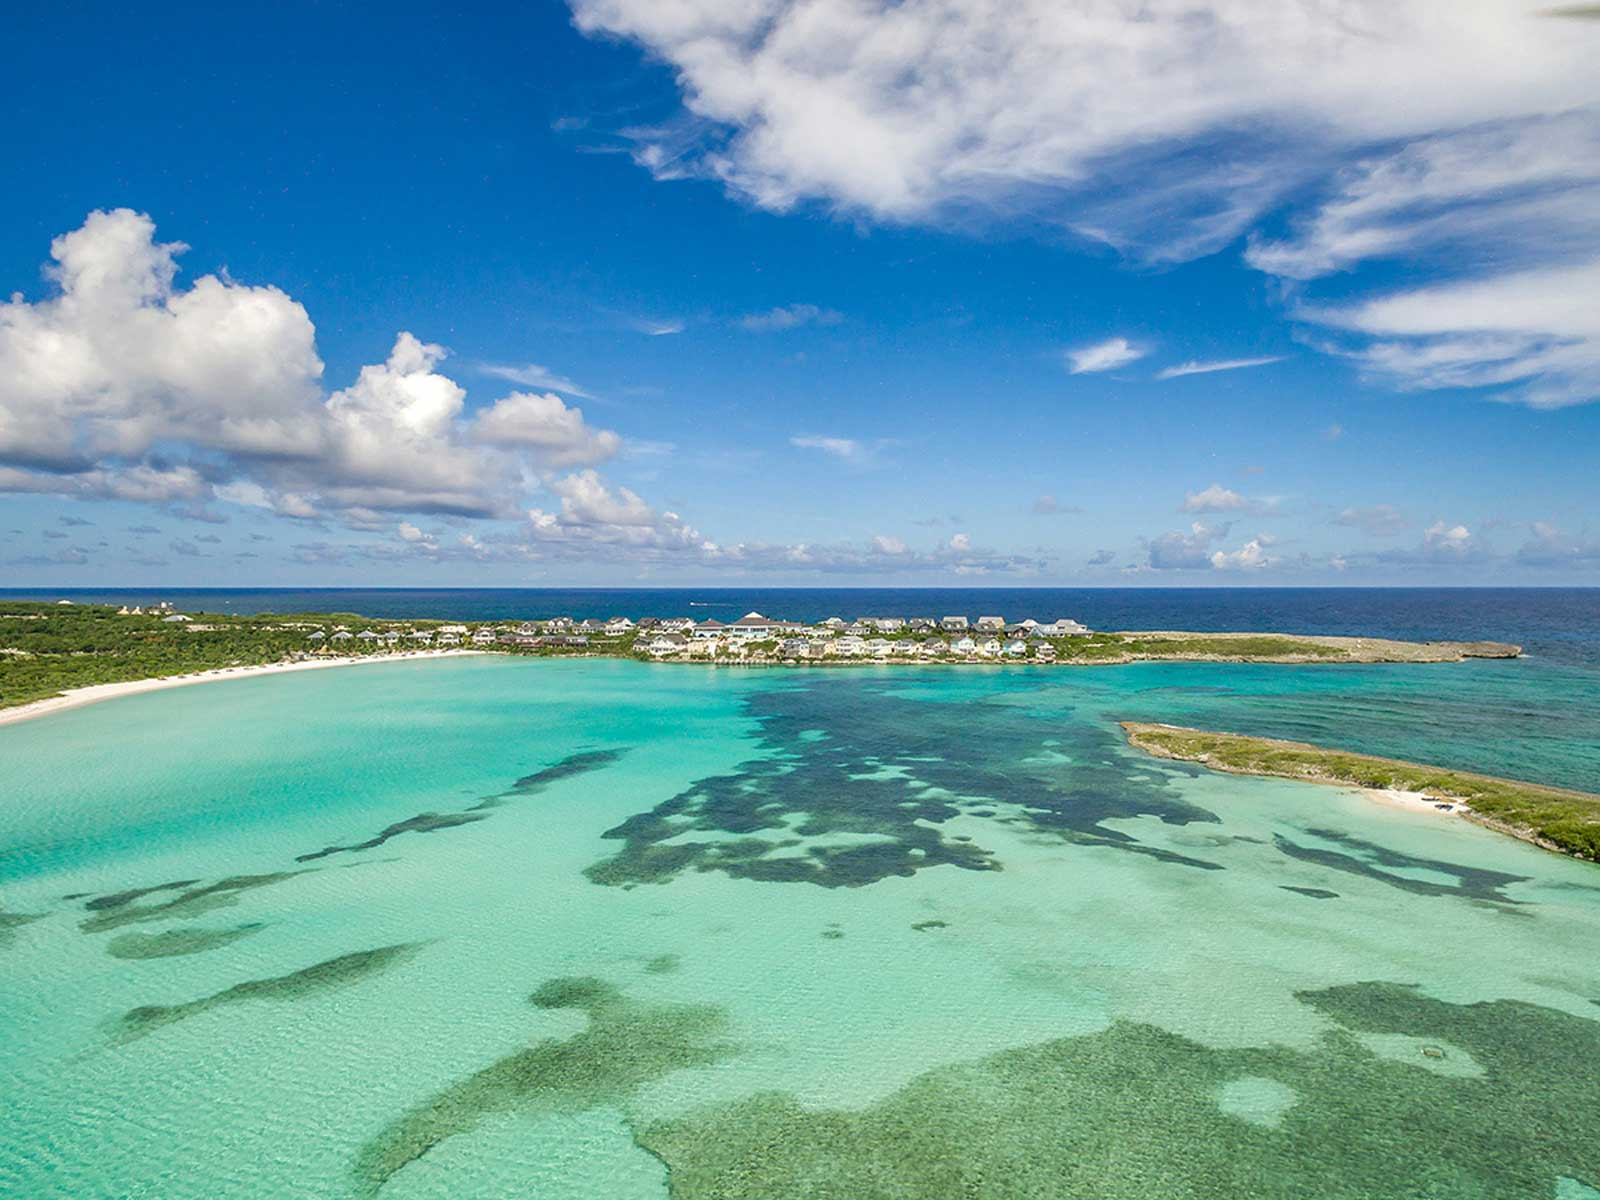 The Abaco Islands